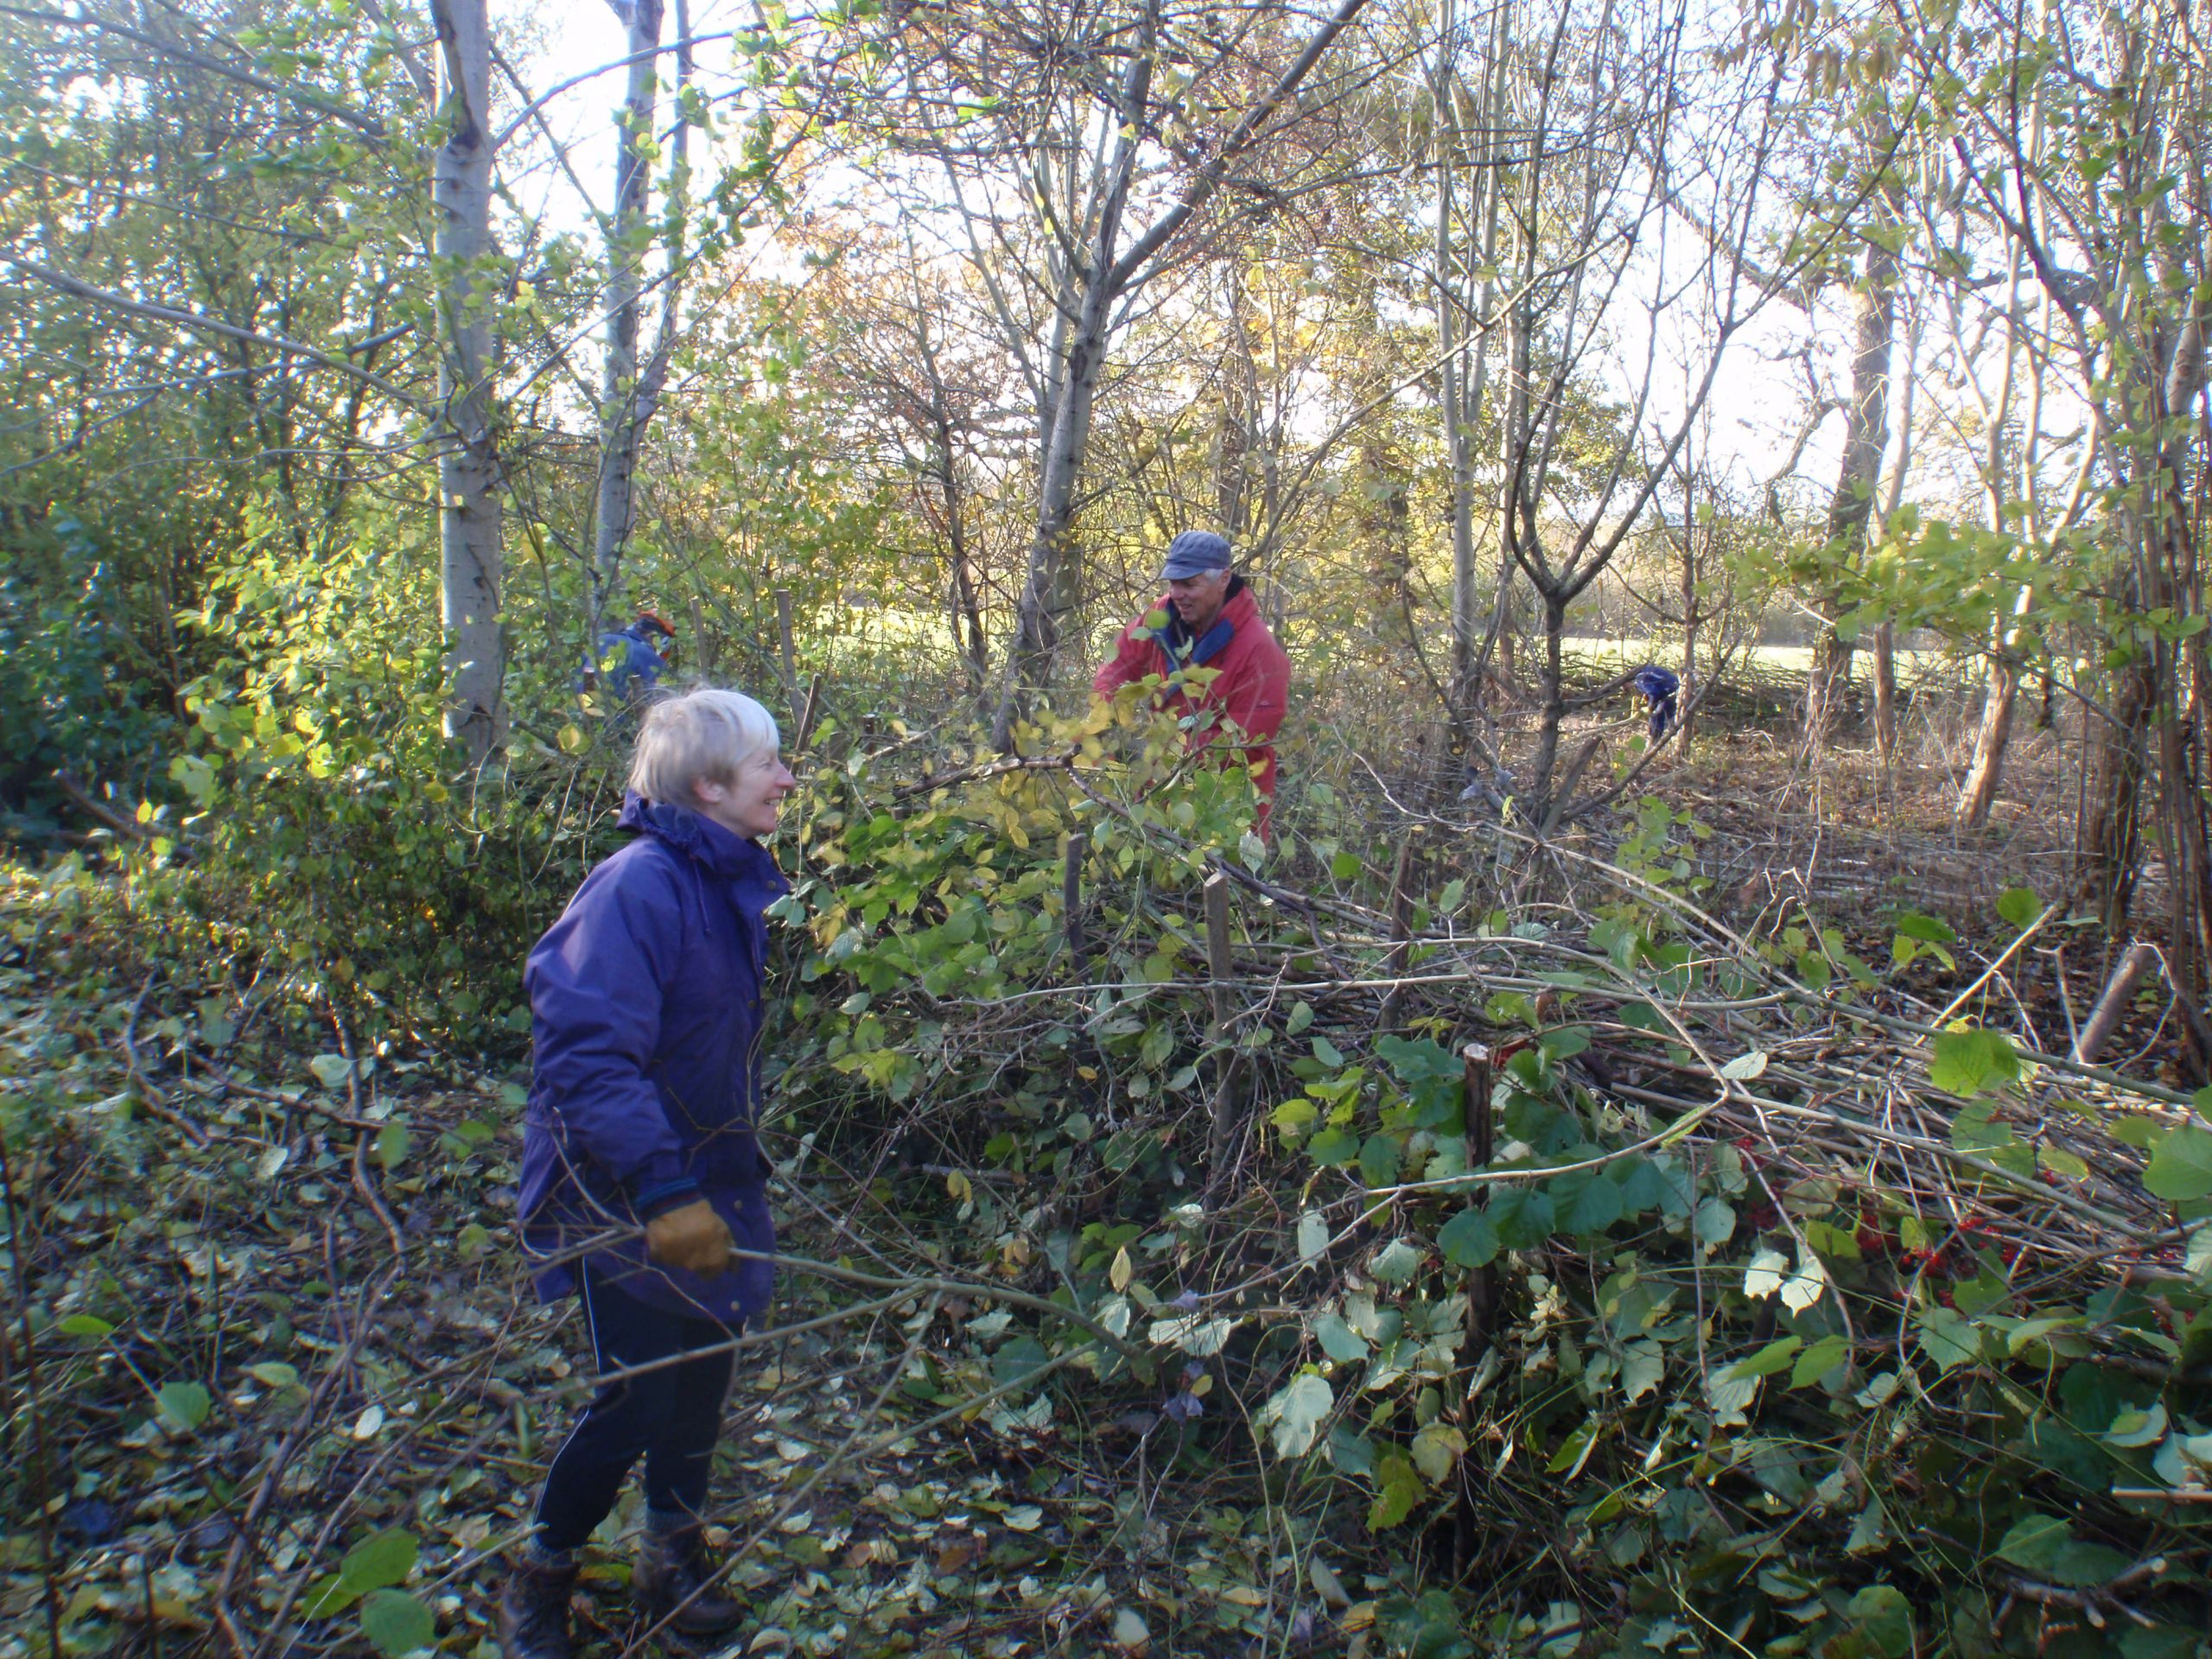 Mike & Ann, making a nice dense hedge!?